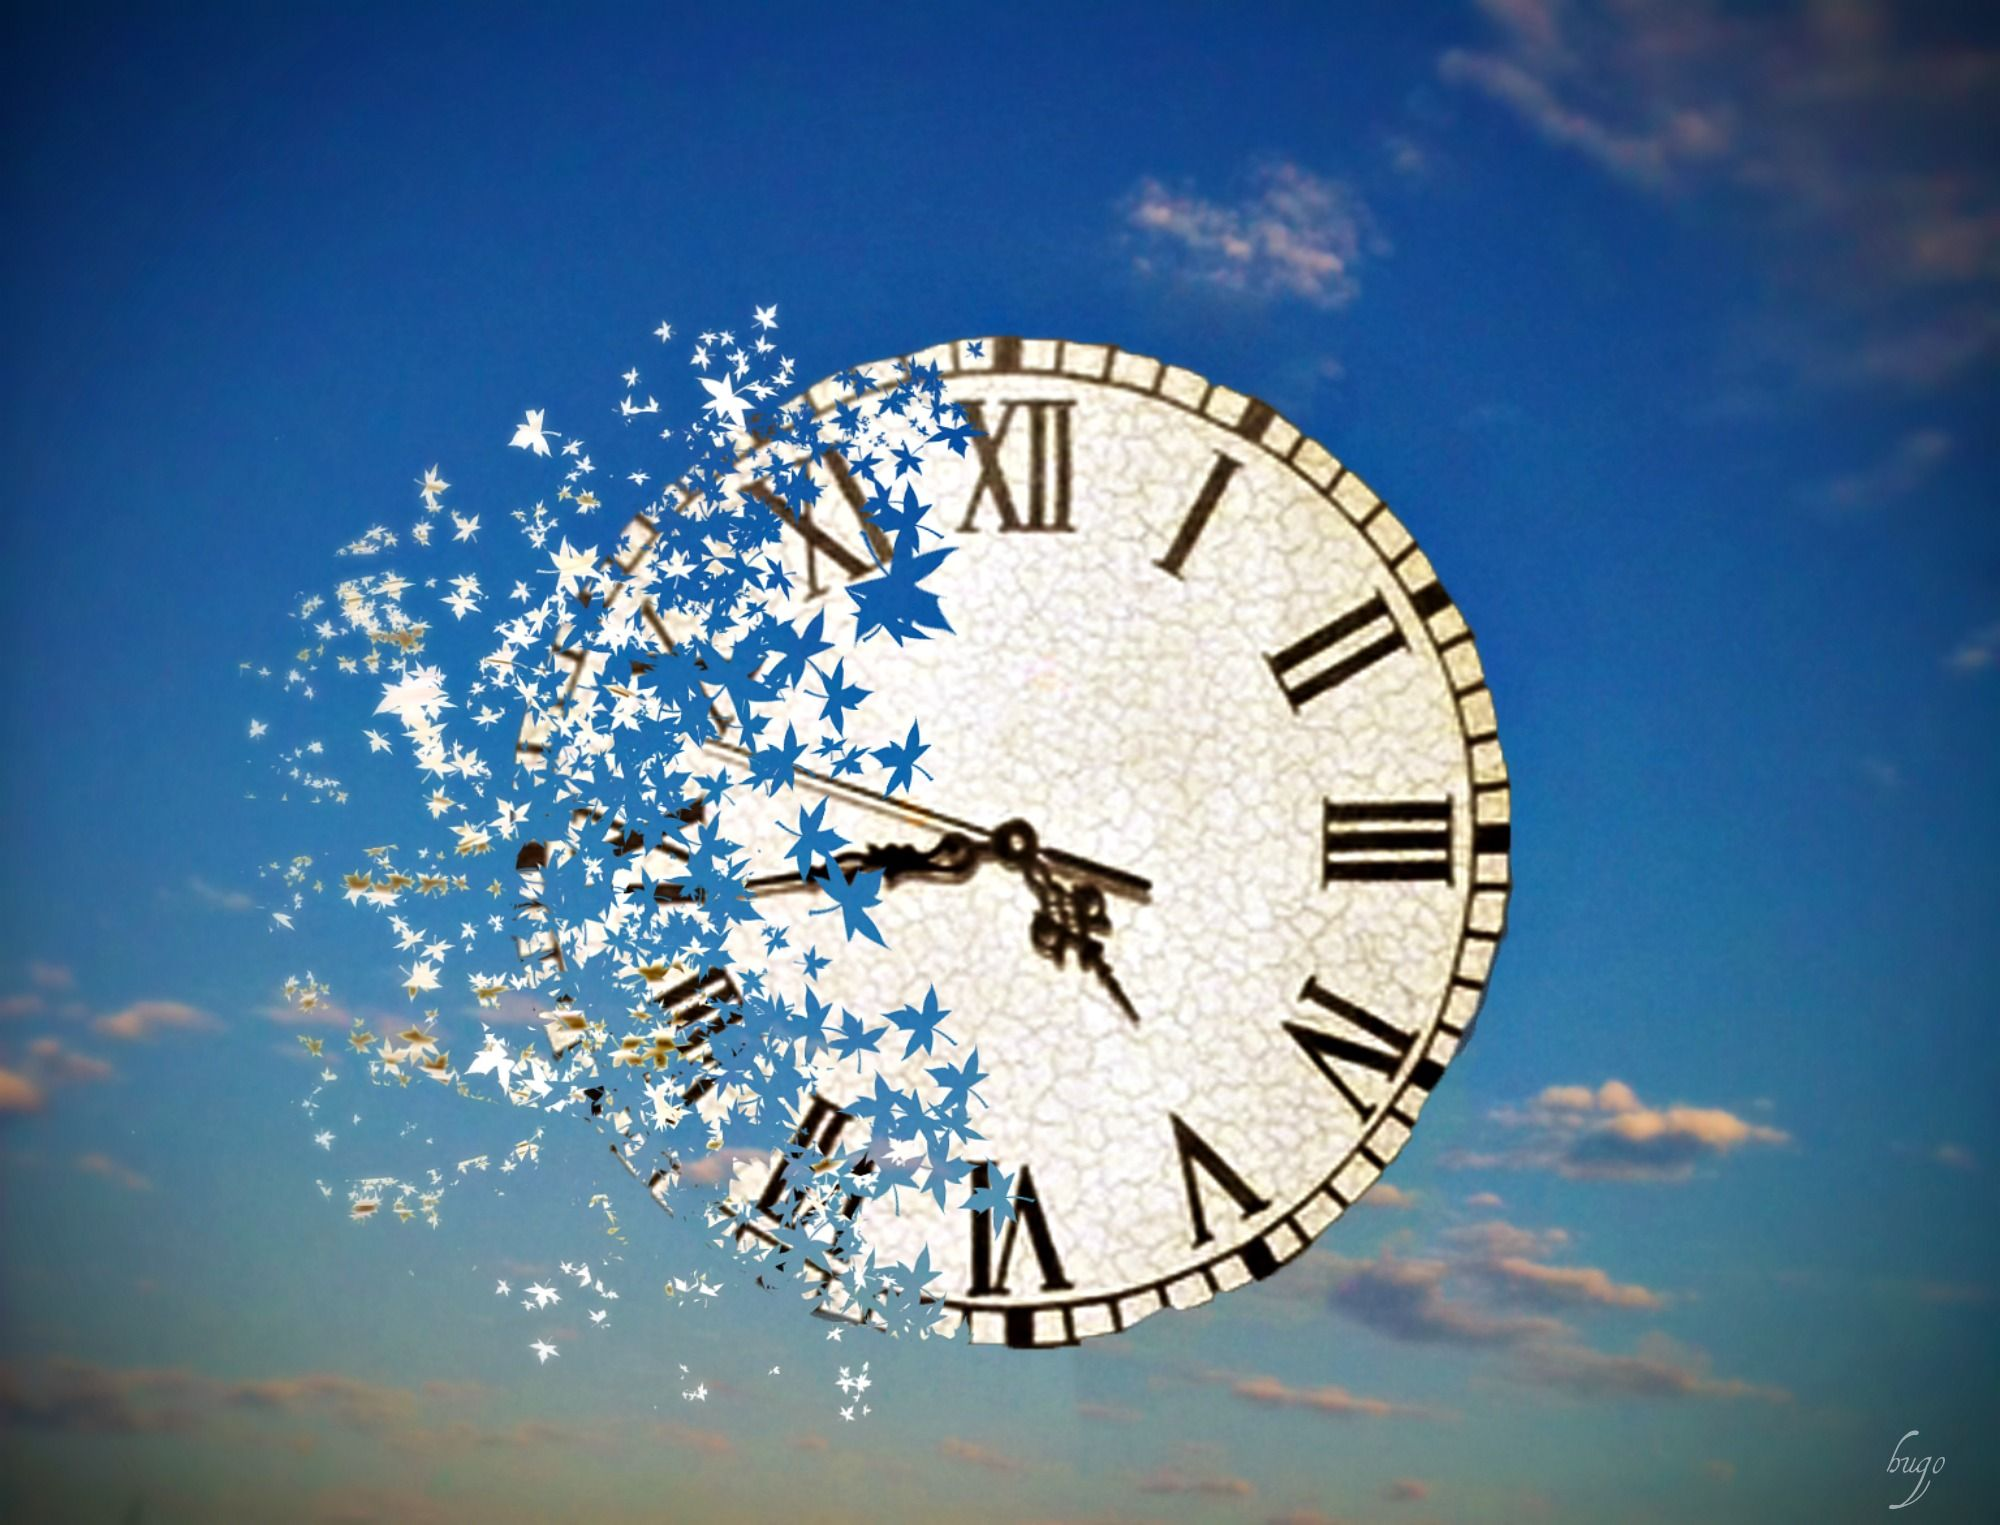 surreal-clock-image